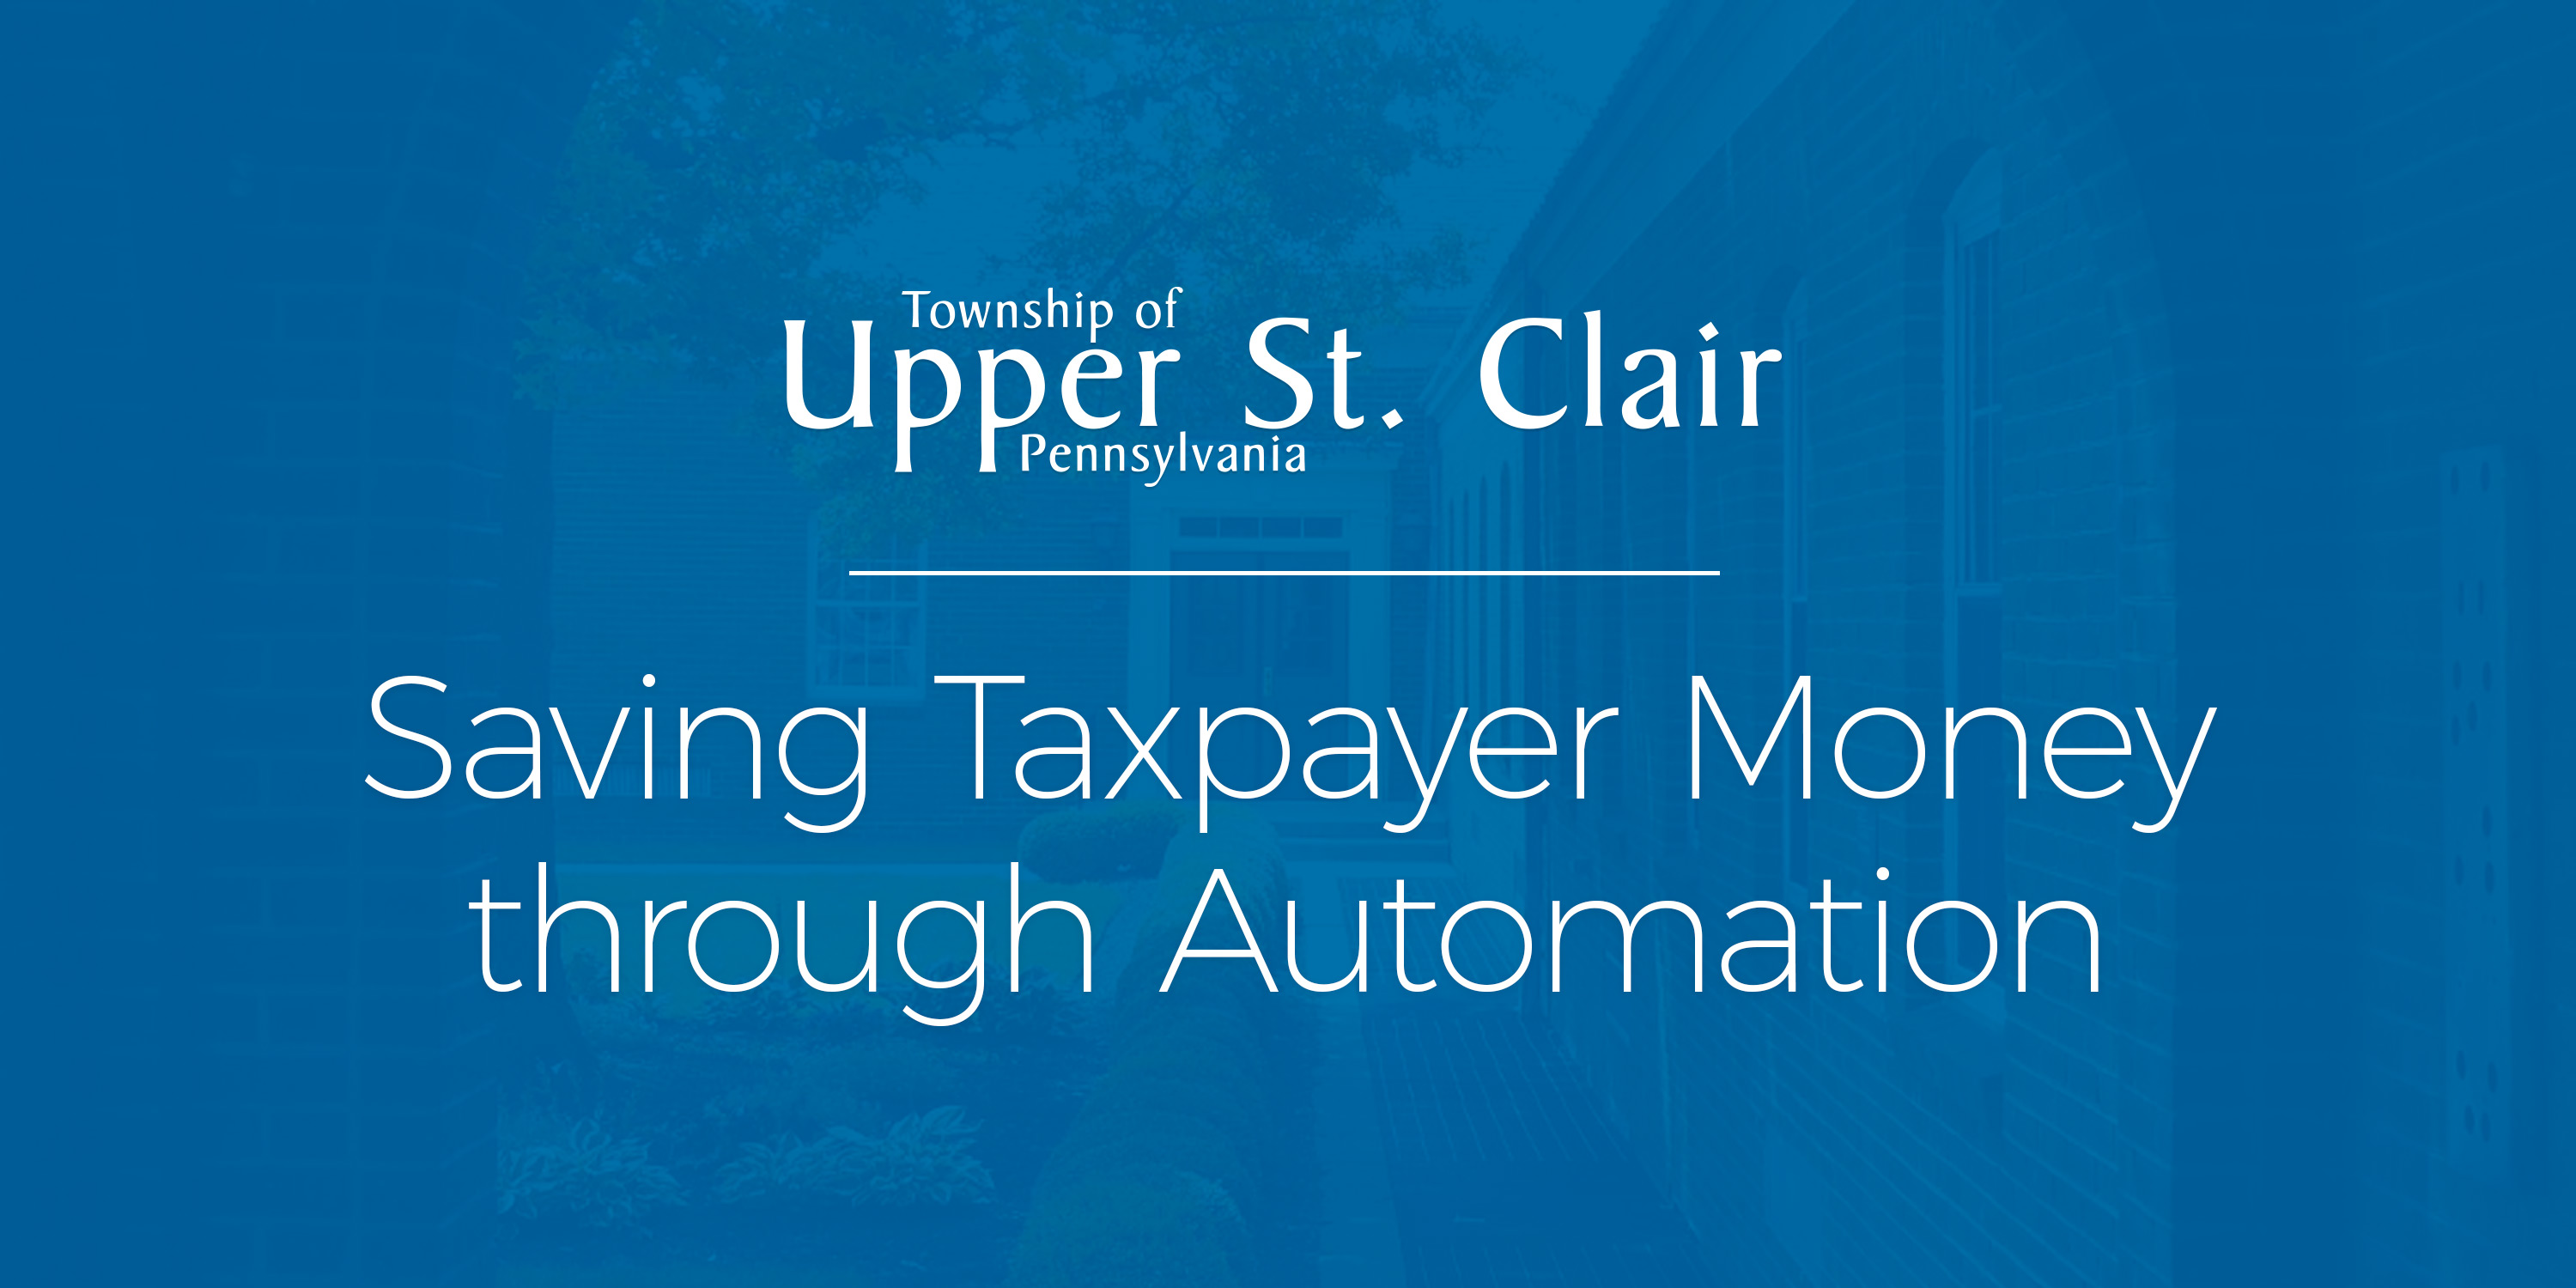 webinar recap and quick quotes from township upper st. clair